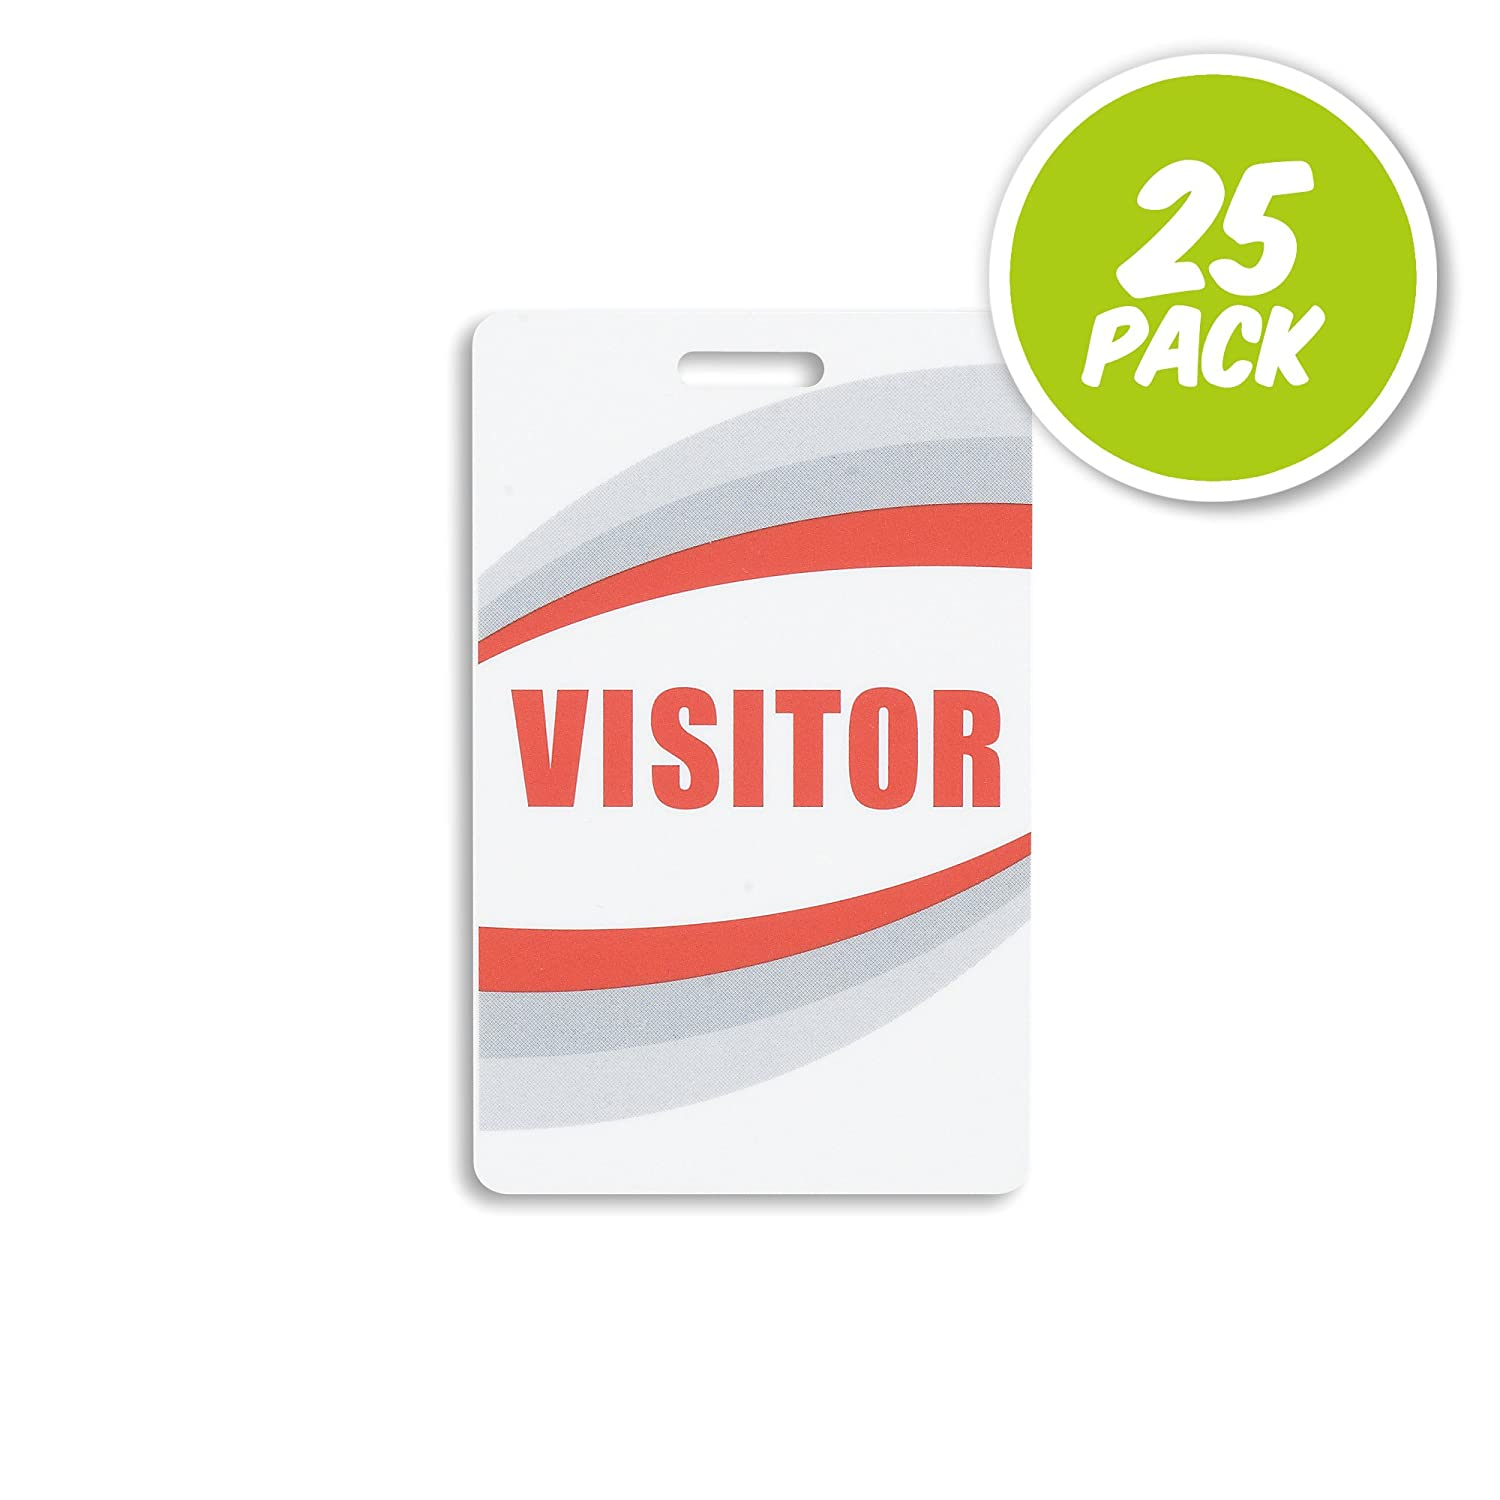 Visitor ID Badges - Preprinted Guest Plastic Cards - Reusable - 25 Pack